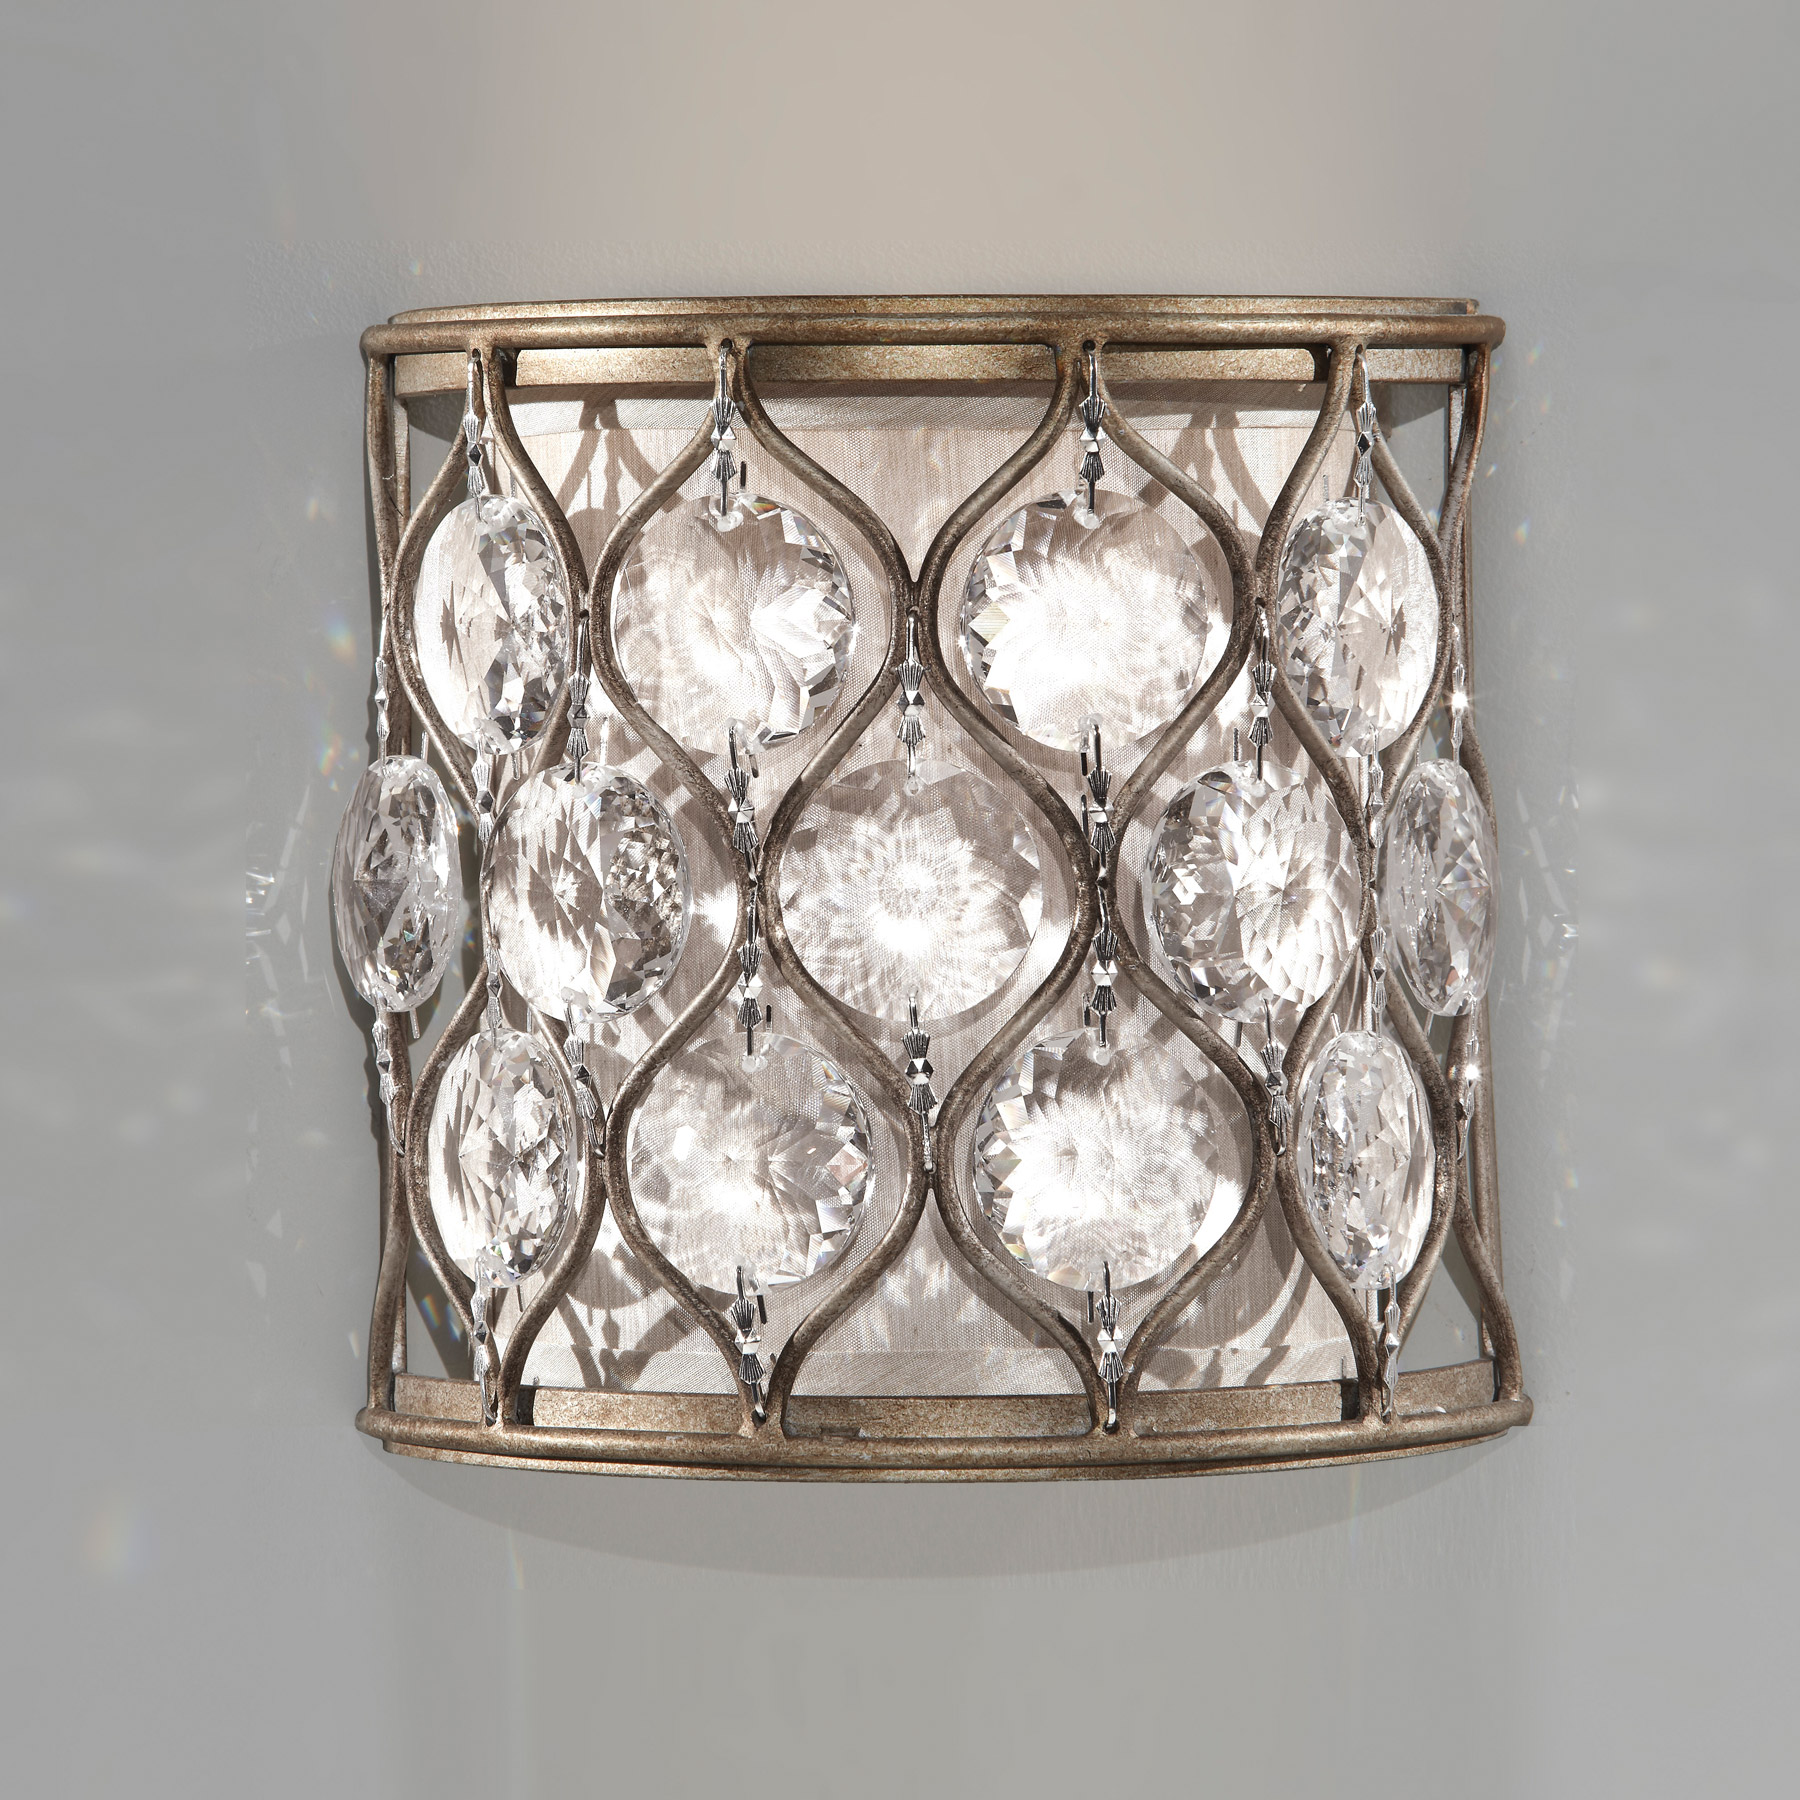 Murray Feiss Wb1497bus Crystal Lucia Wall Sconce